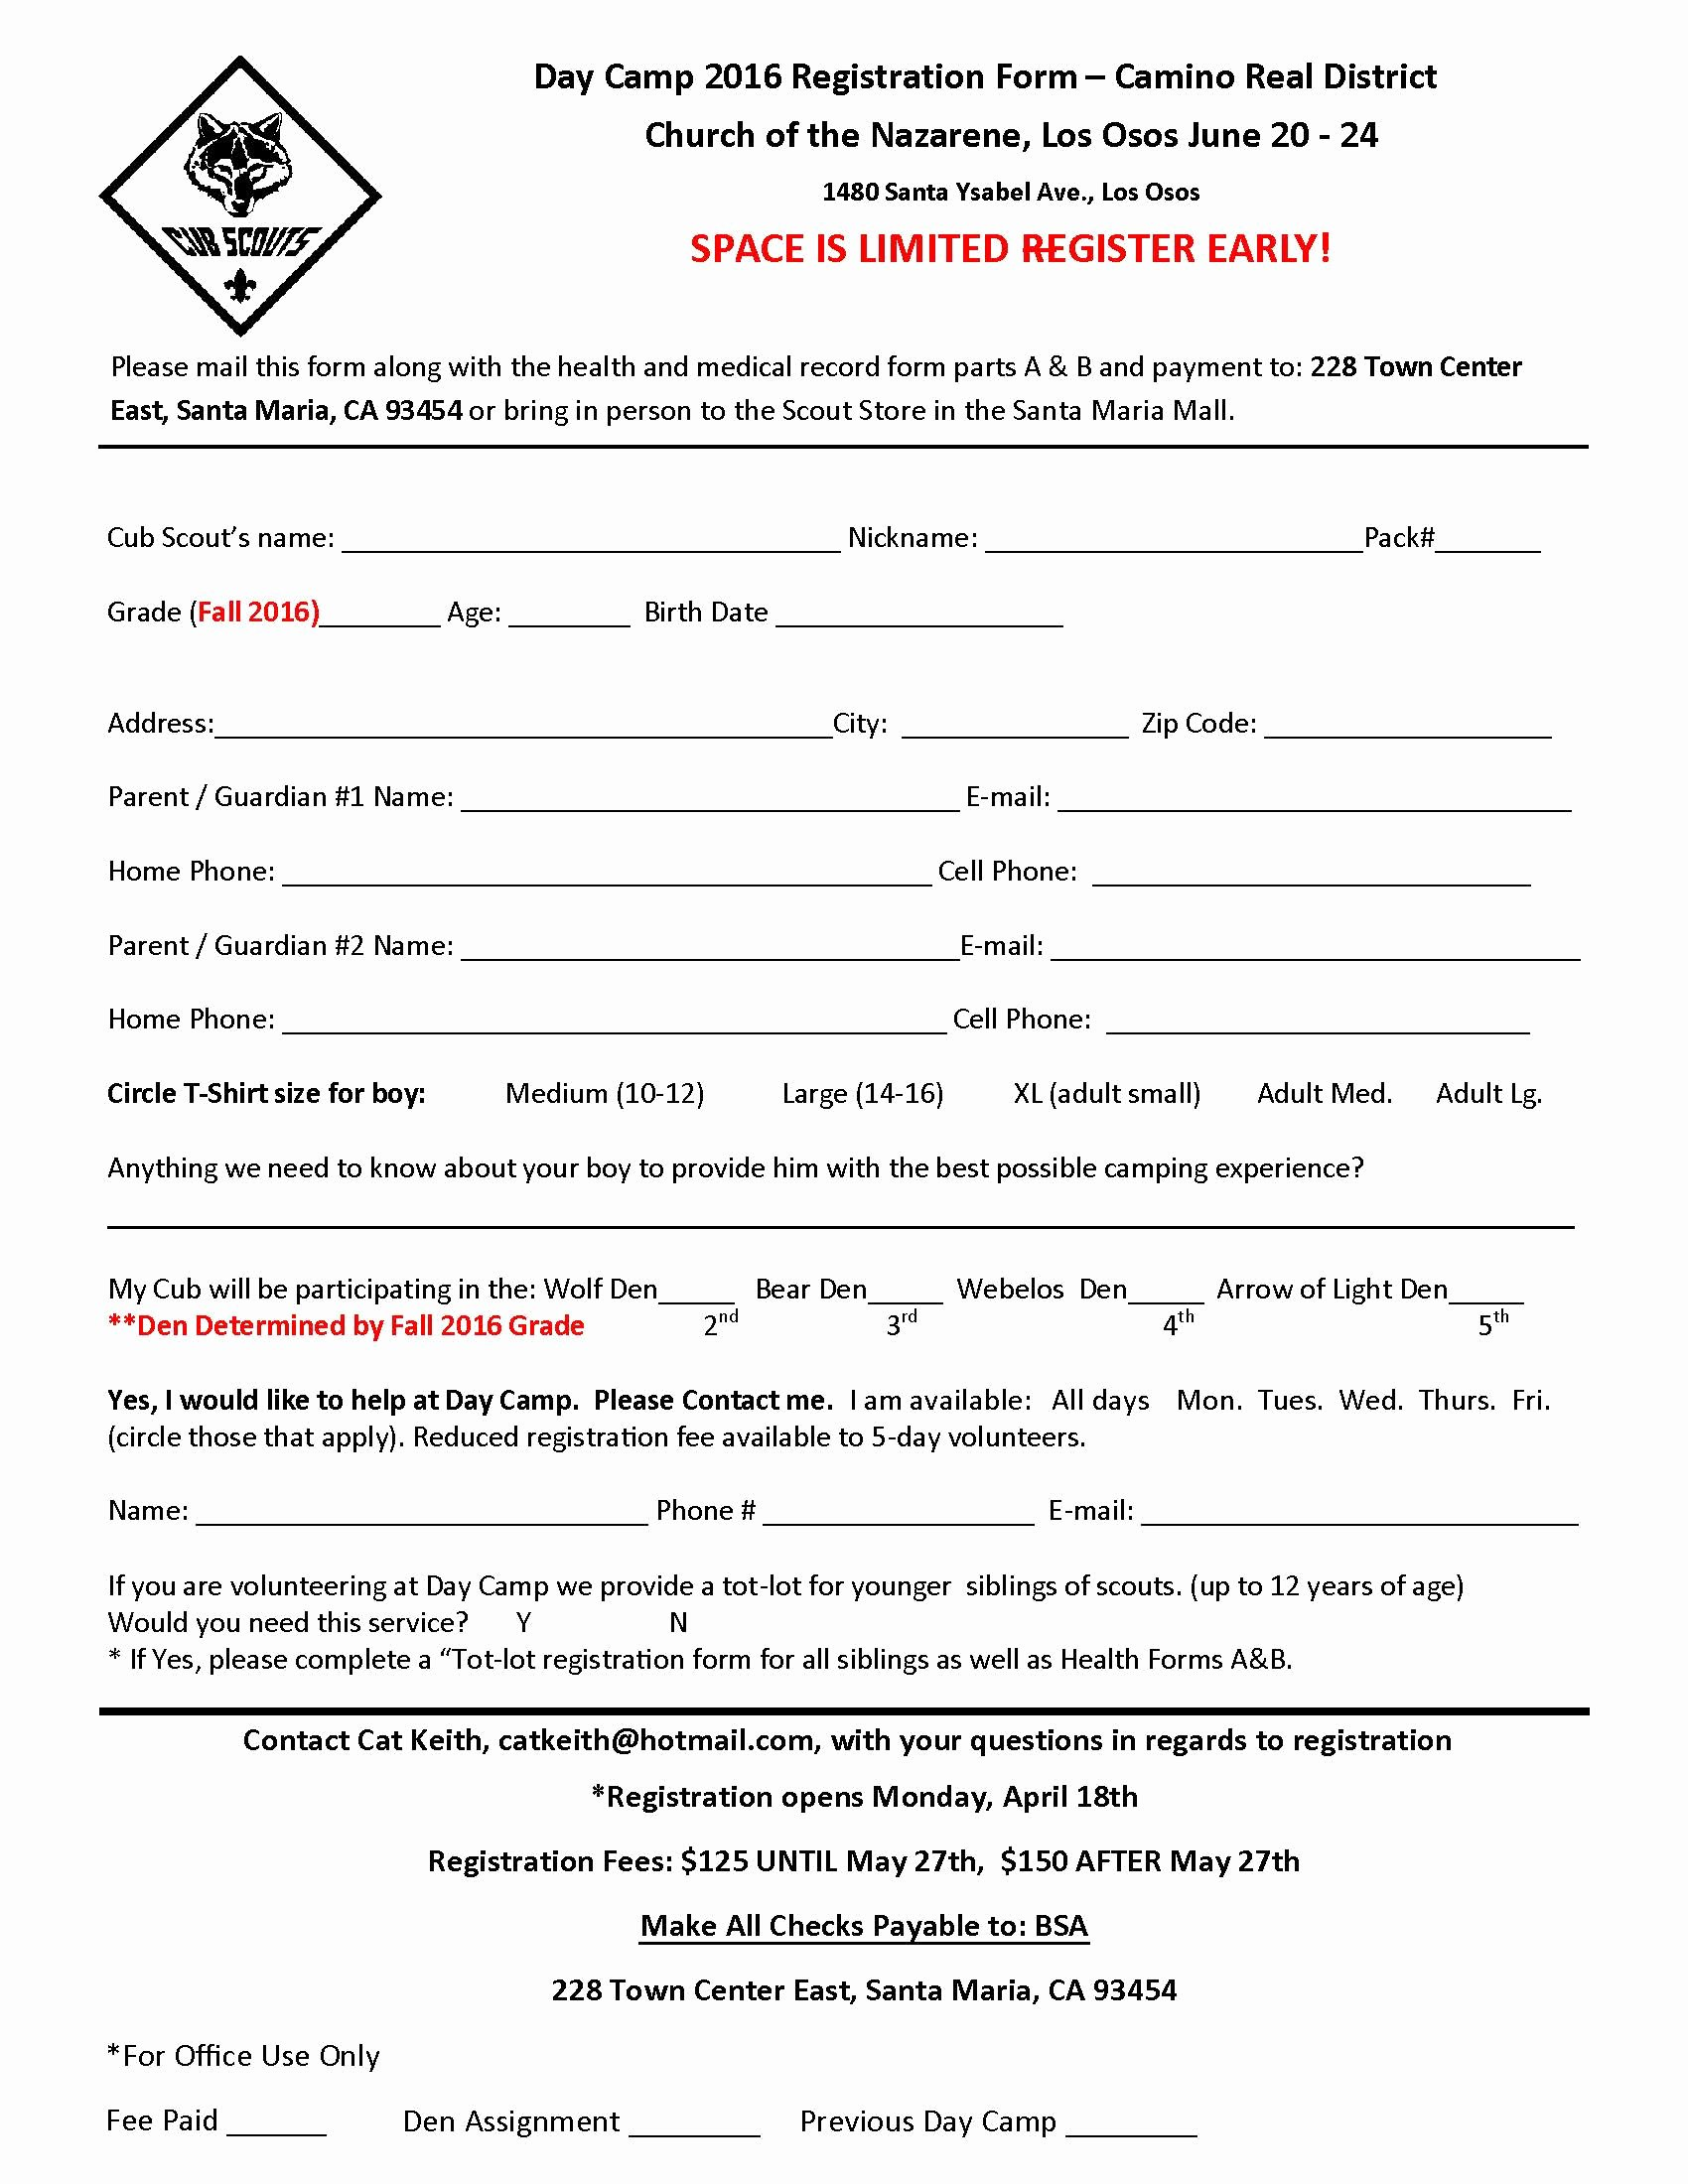 Day Camp Registration form Template Inspirational Registration form for 2016 Cub Day Camp